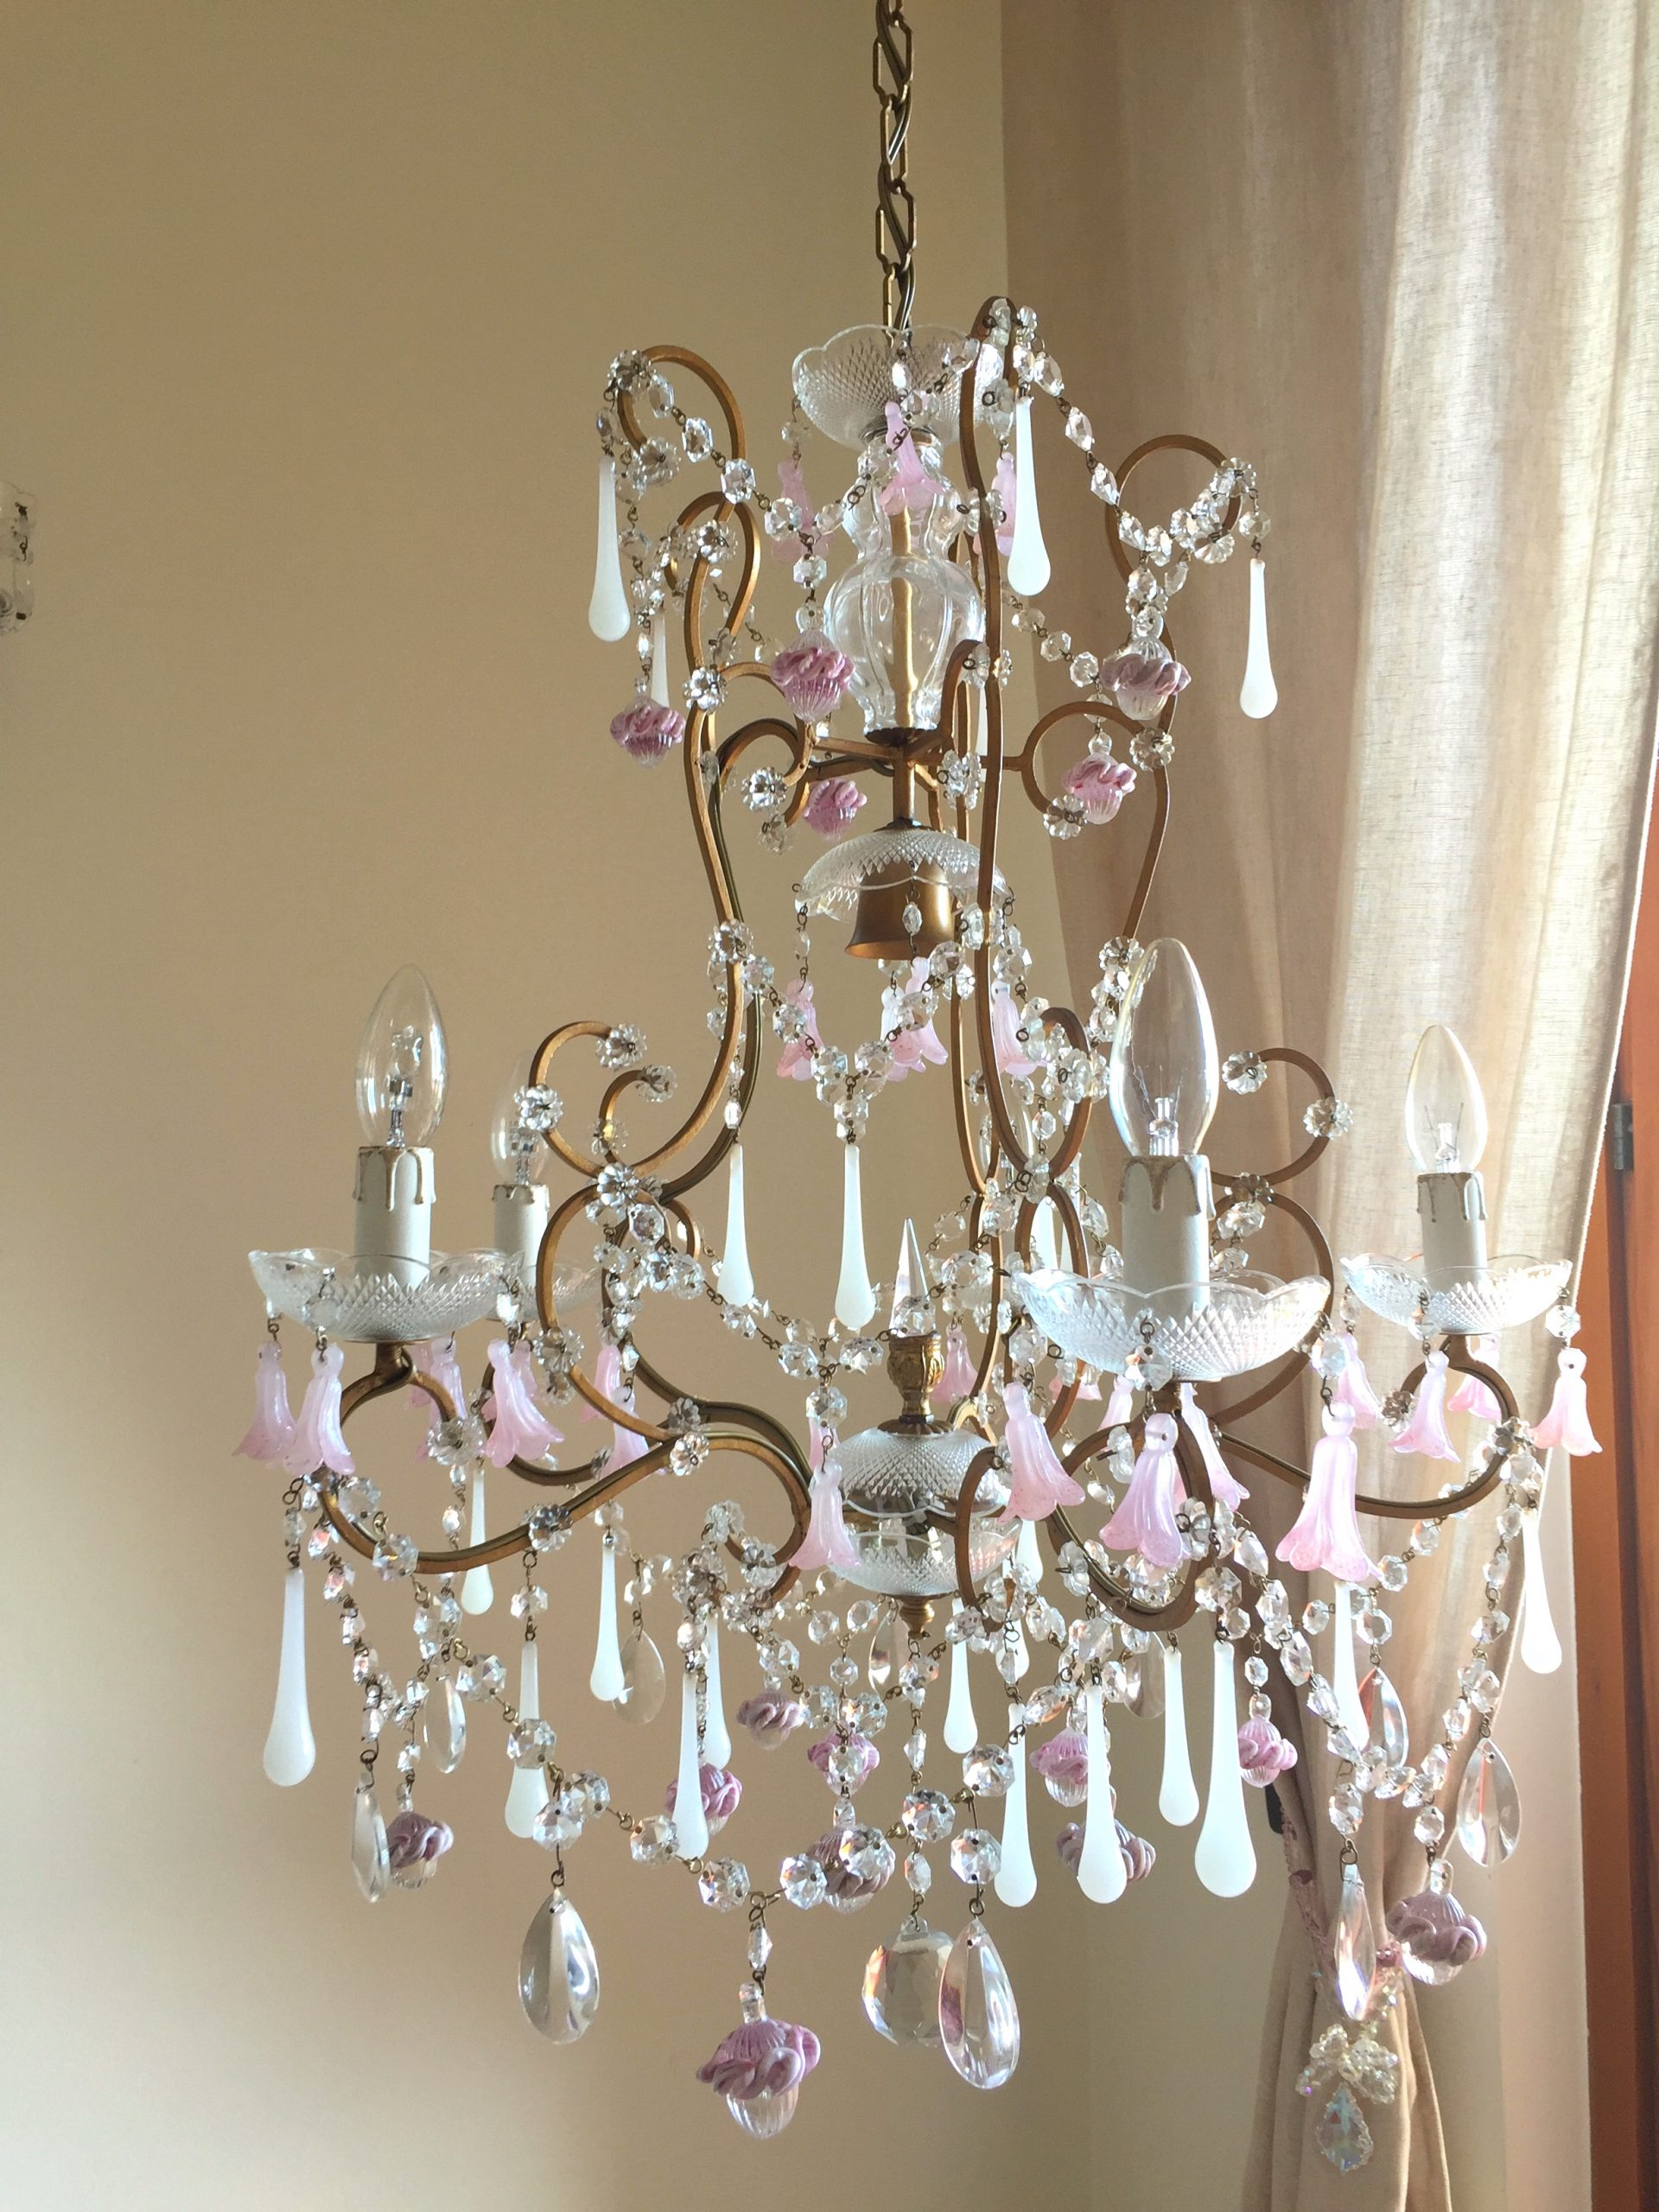 Rare Murano opaline glass pendants chandelier